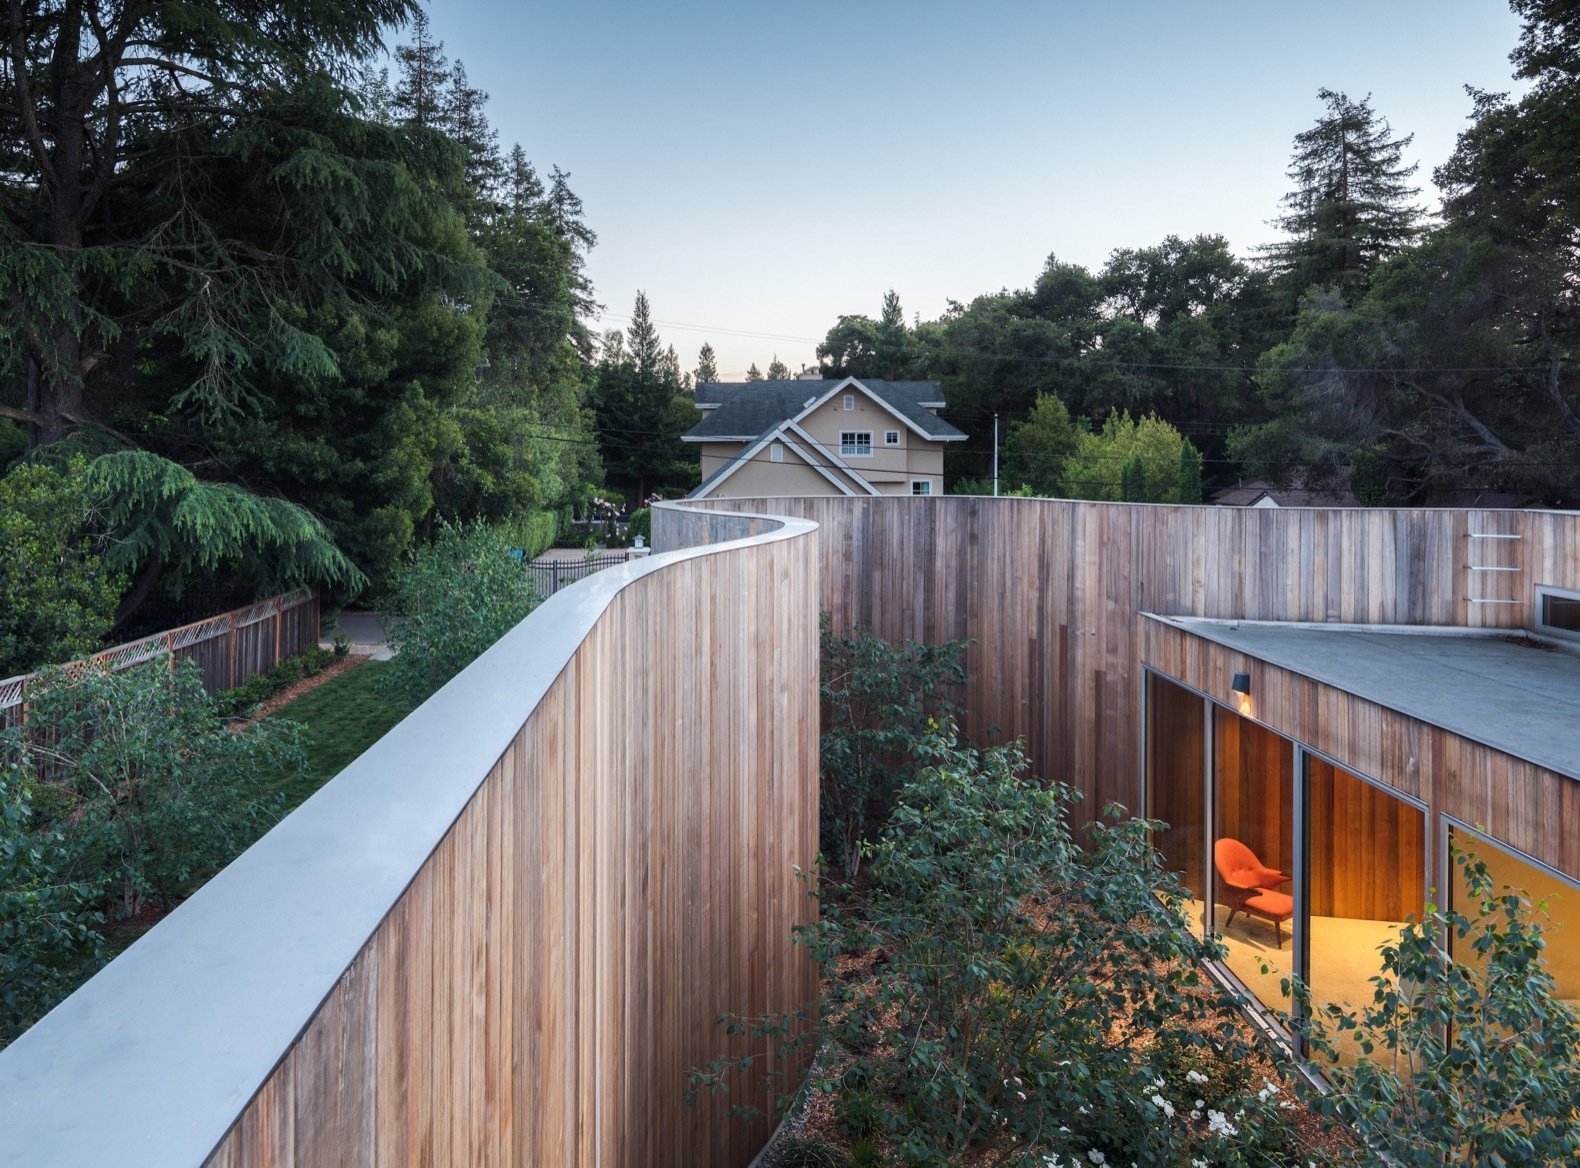 Roofless House courtyard and perimeter wall